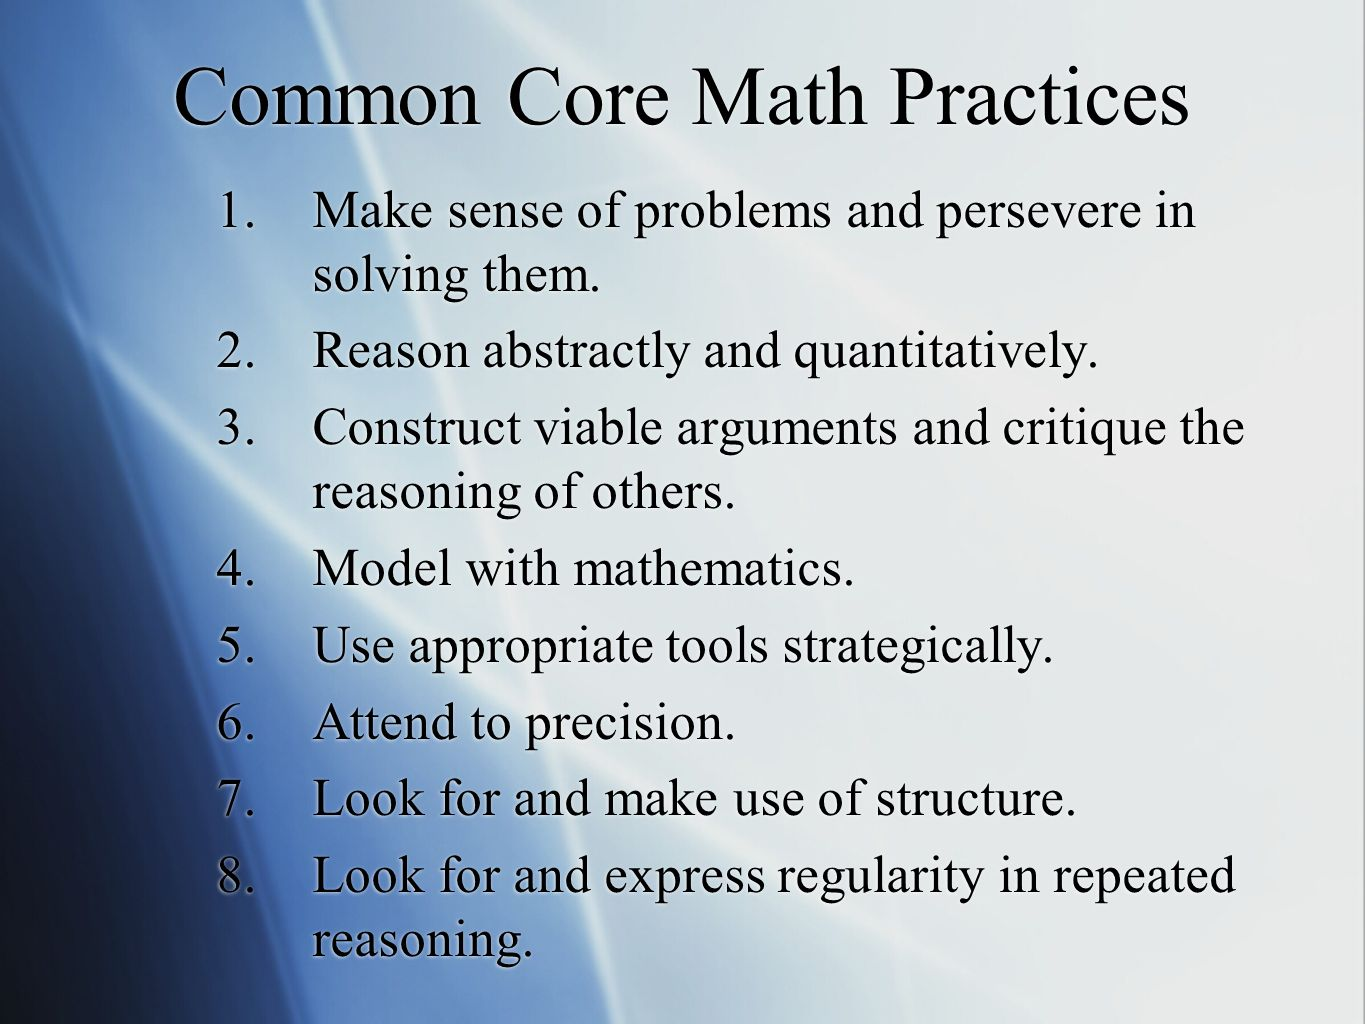 Common Core Math Practices 1.Make sense of problems and persevere in solving them.